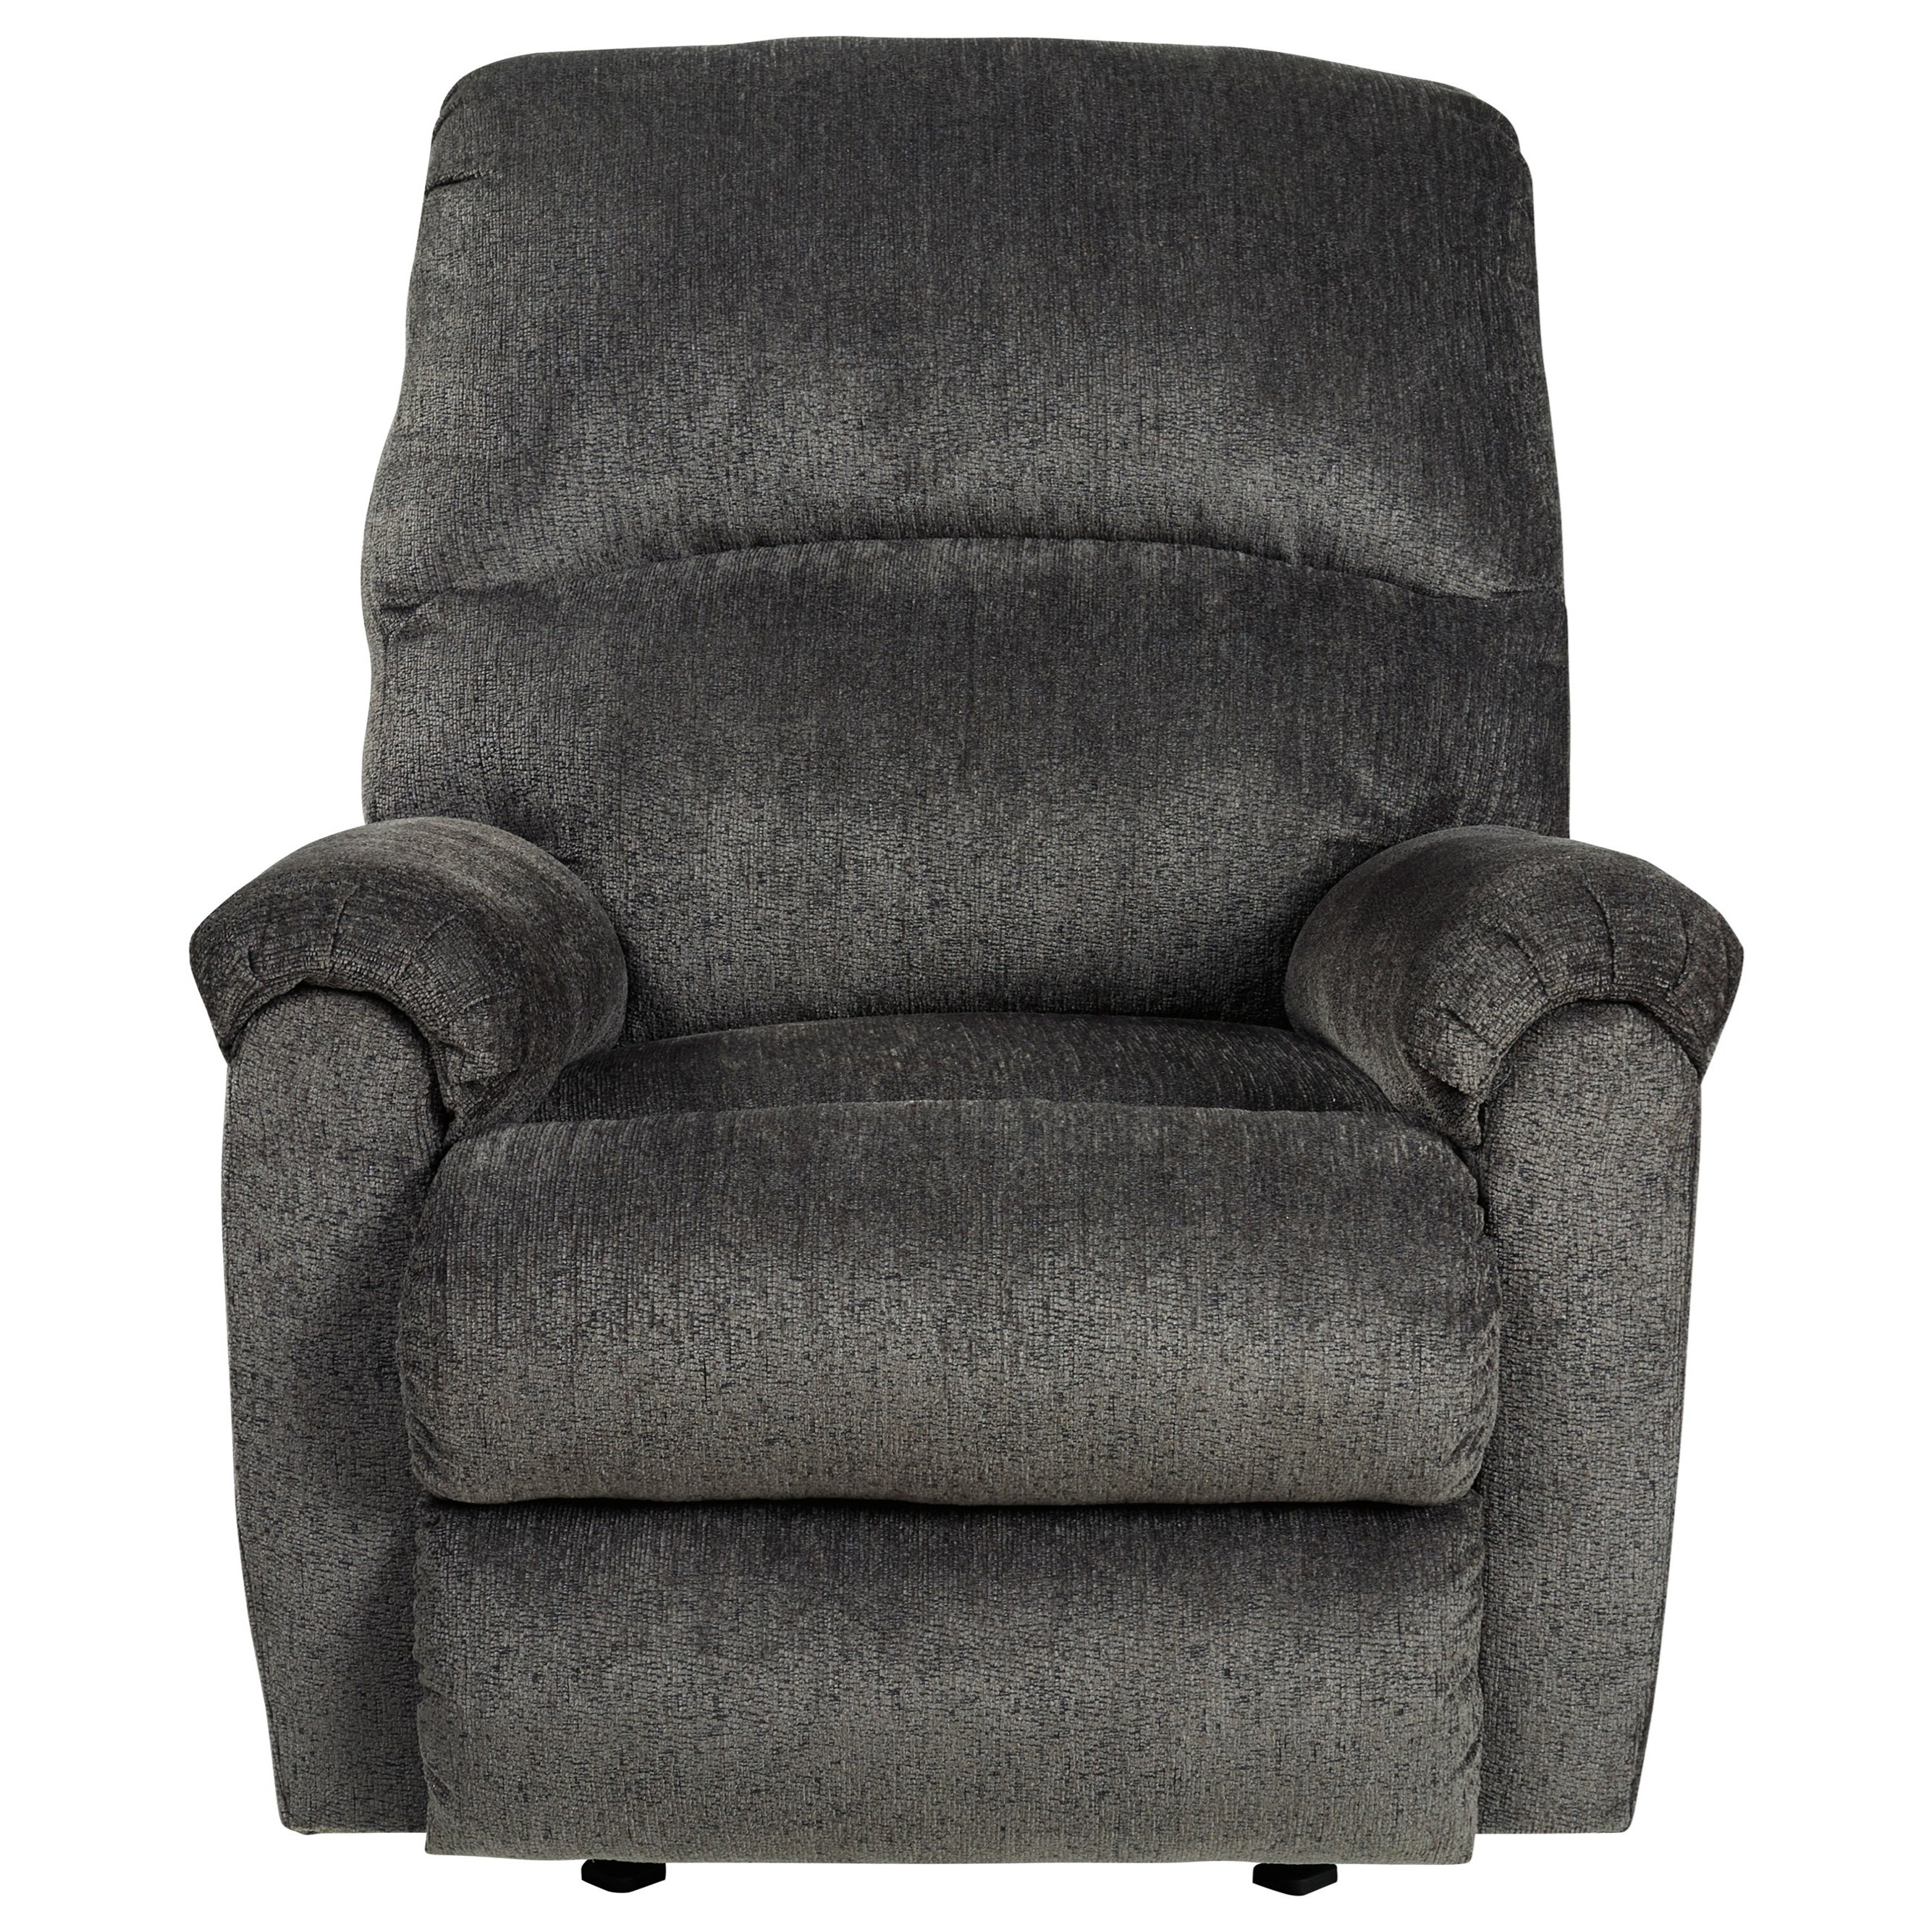 Ballinasloe Rocker Recliner by Signature Design by Ashley at Zak's Warehouse Clearance Center